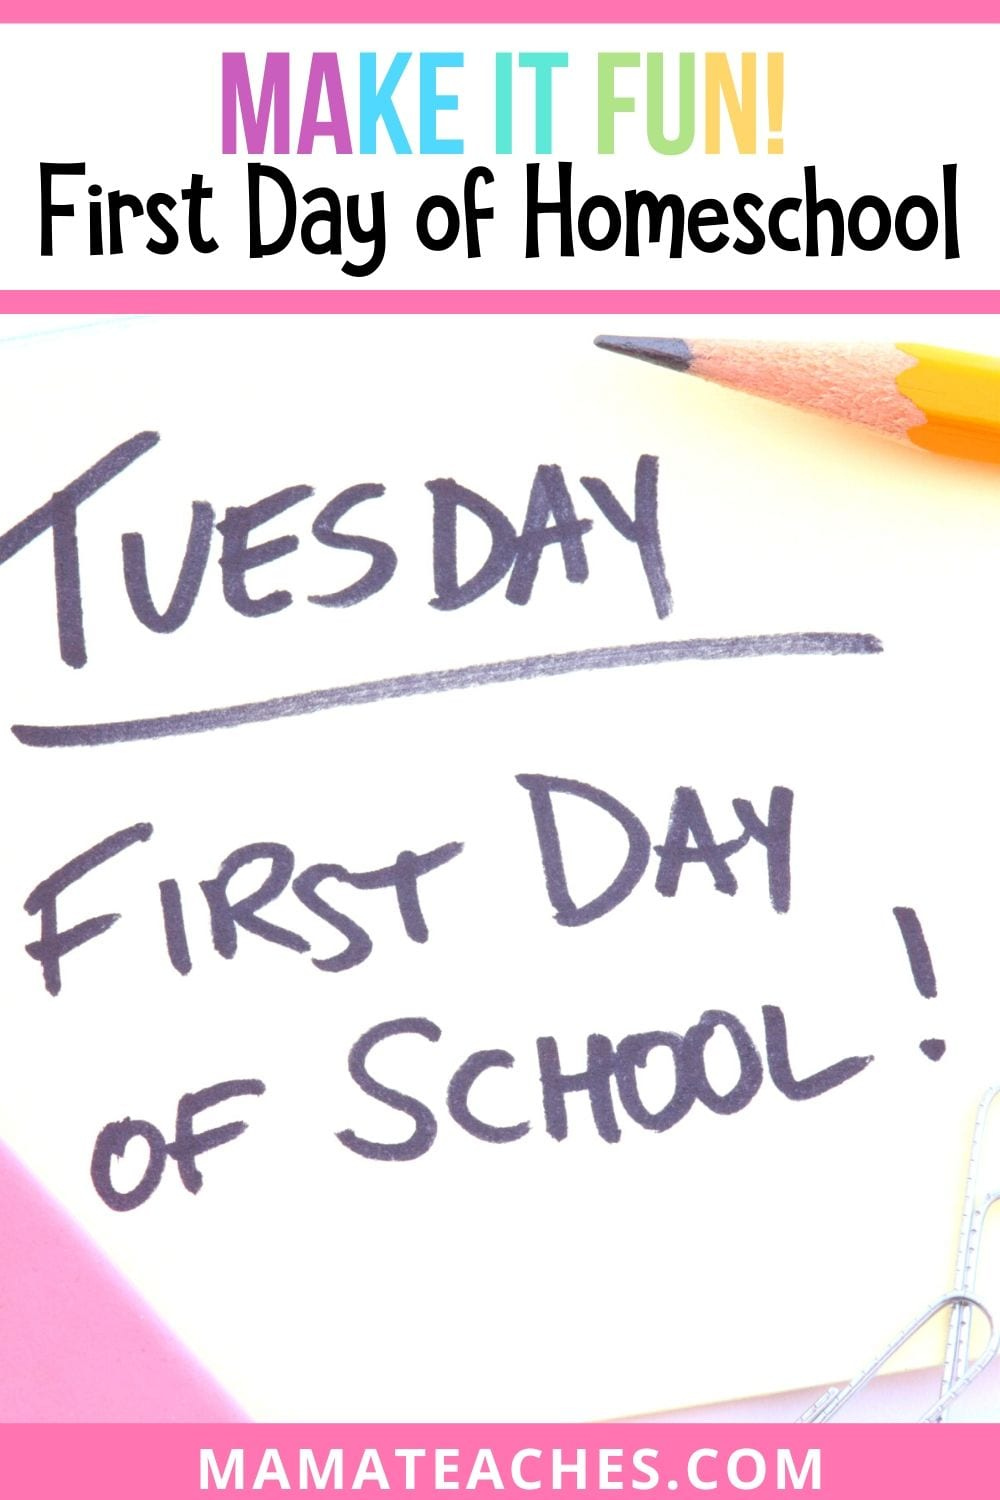 Make it fun! The First Day of Homeschool should be fun - here's how to make it amazing